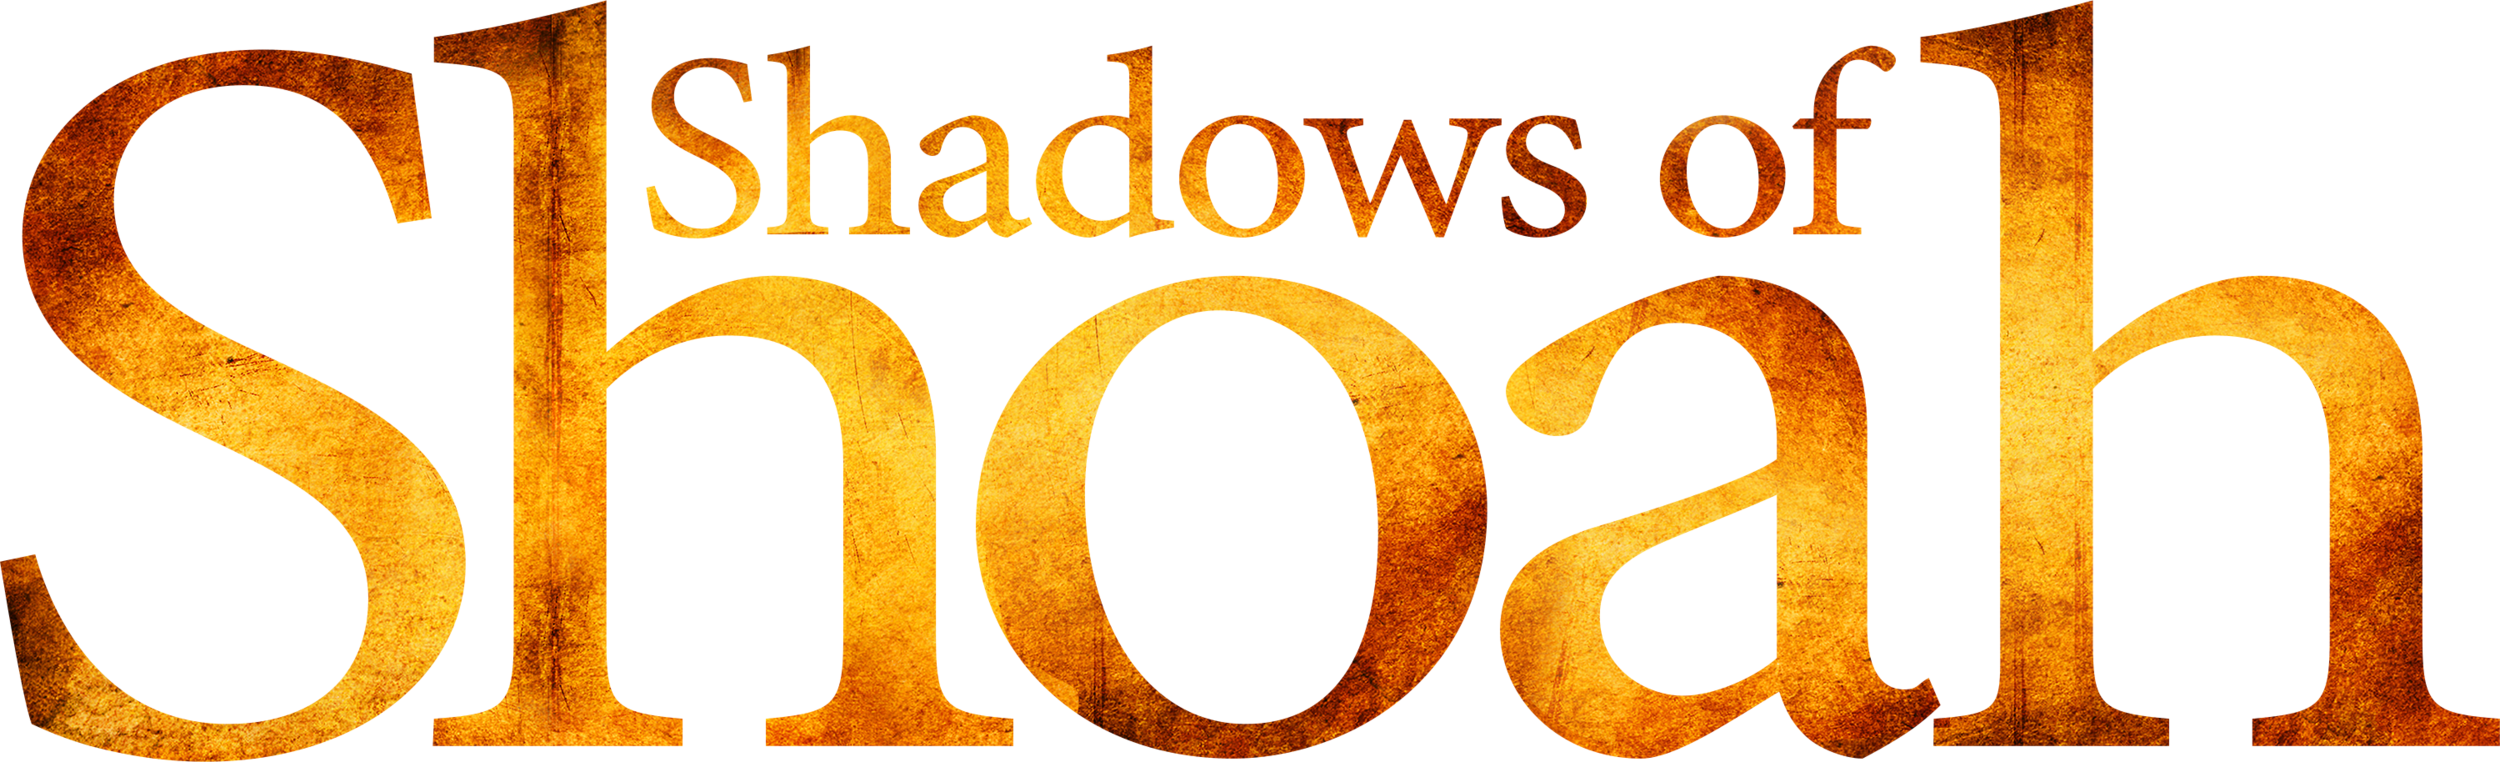 Shadows-of-Shoah-logo-tight 2.png